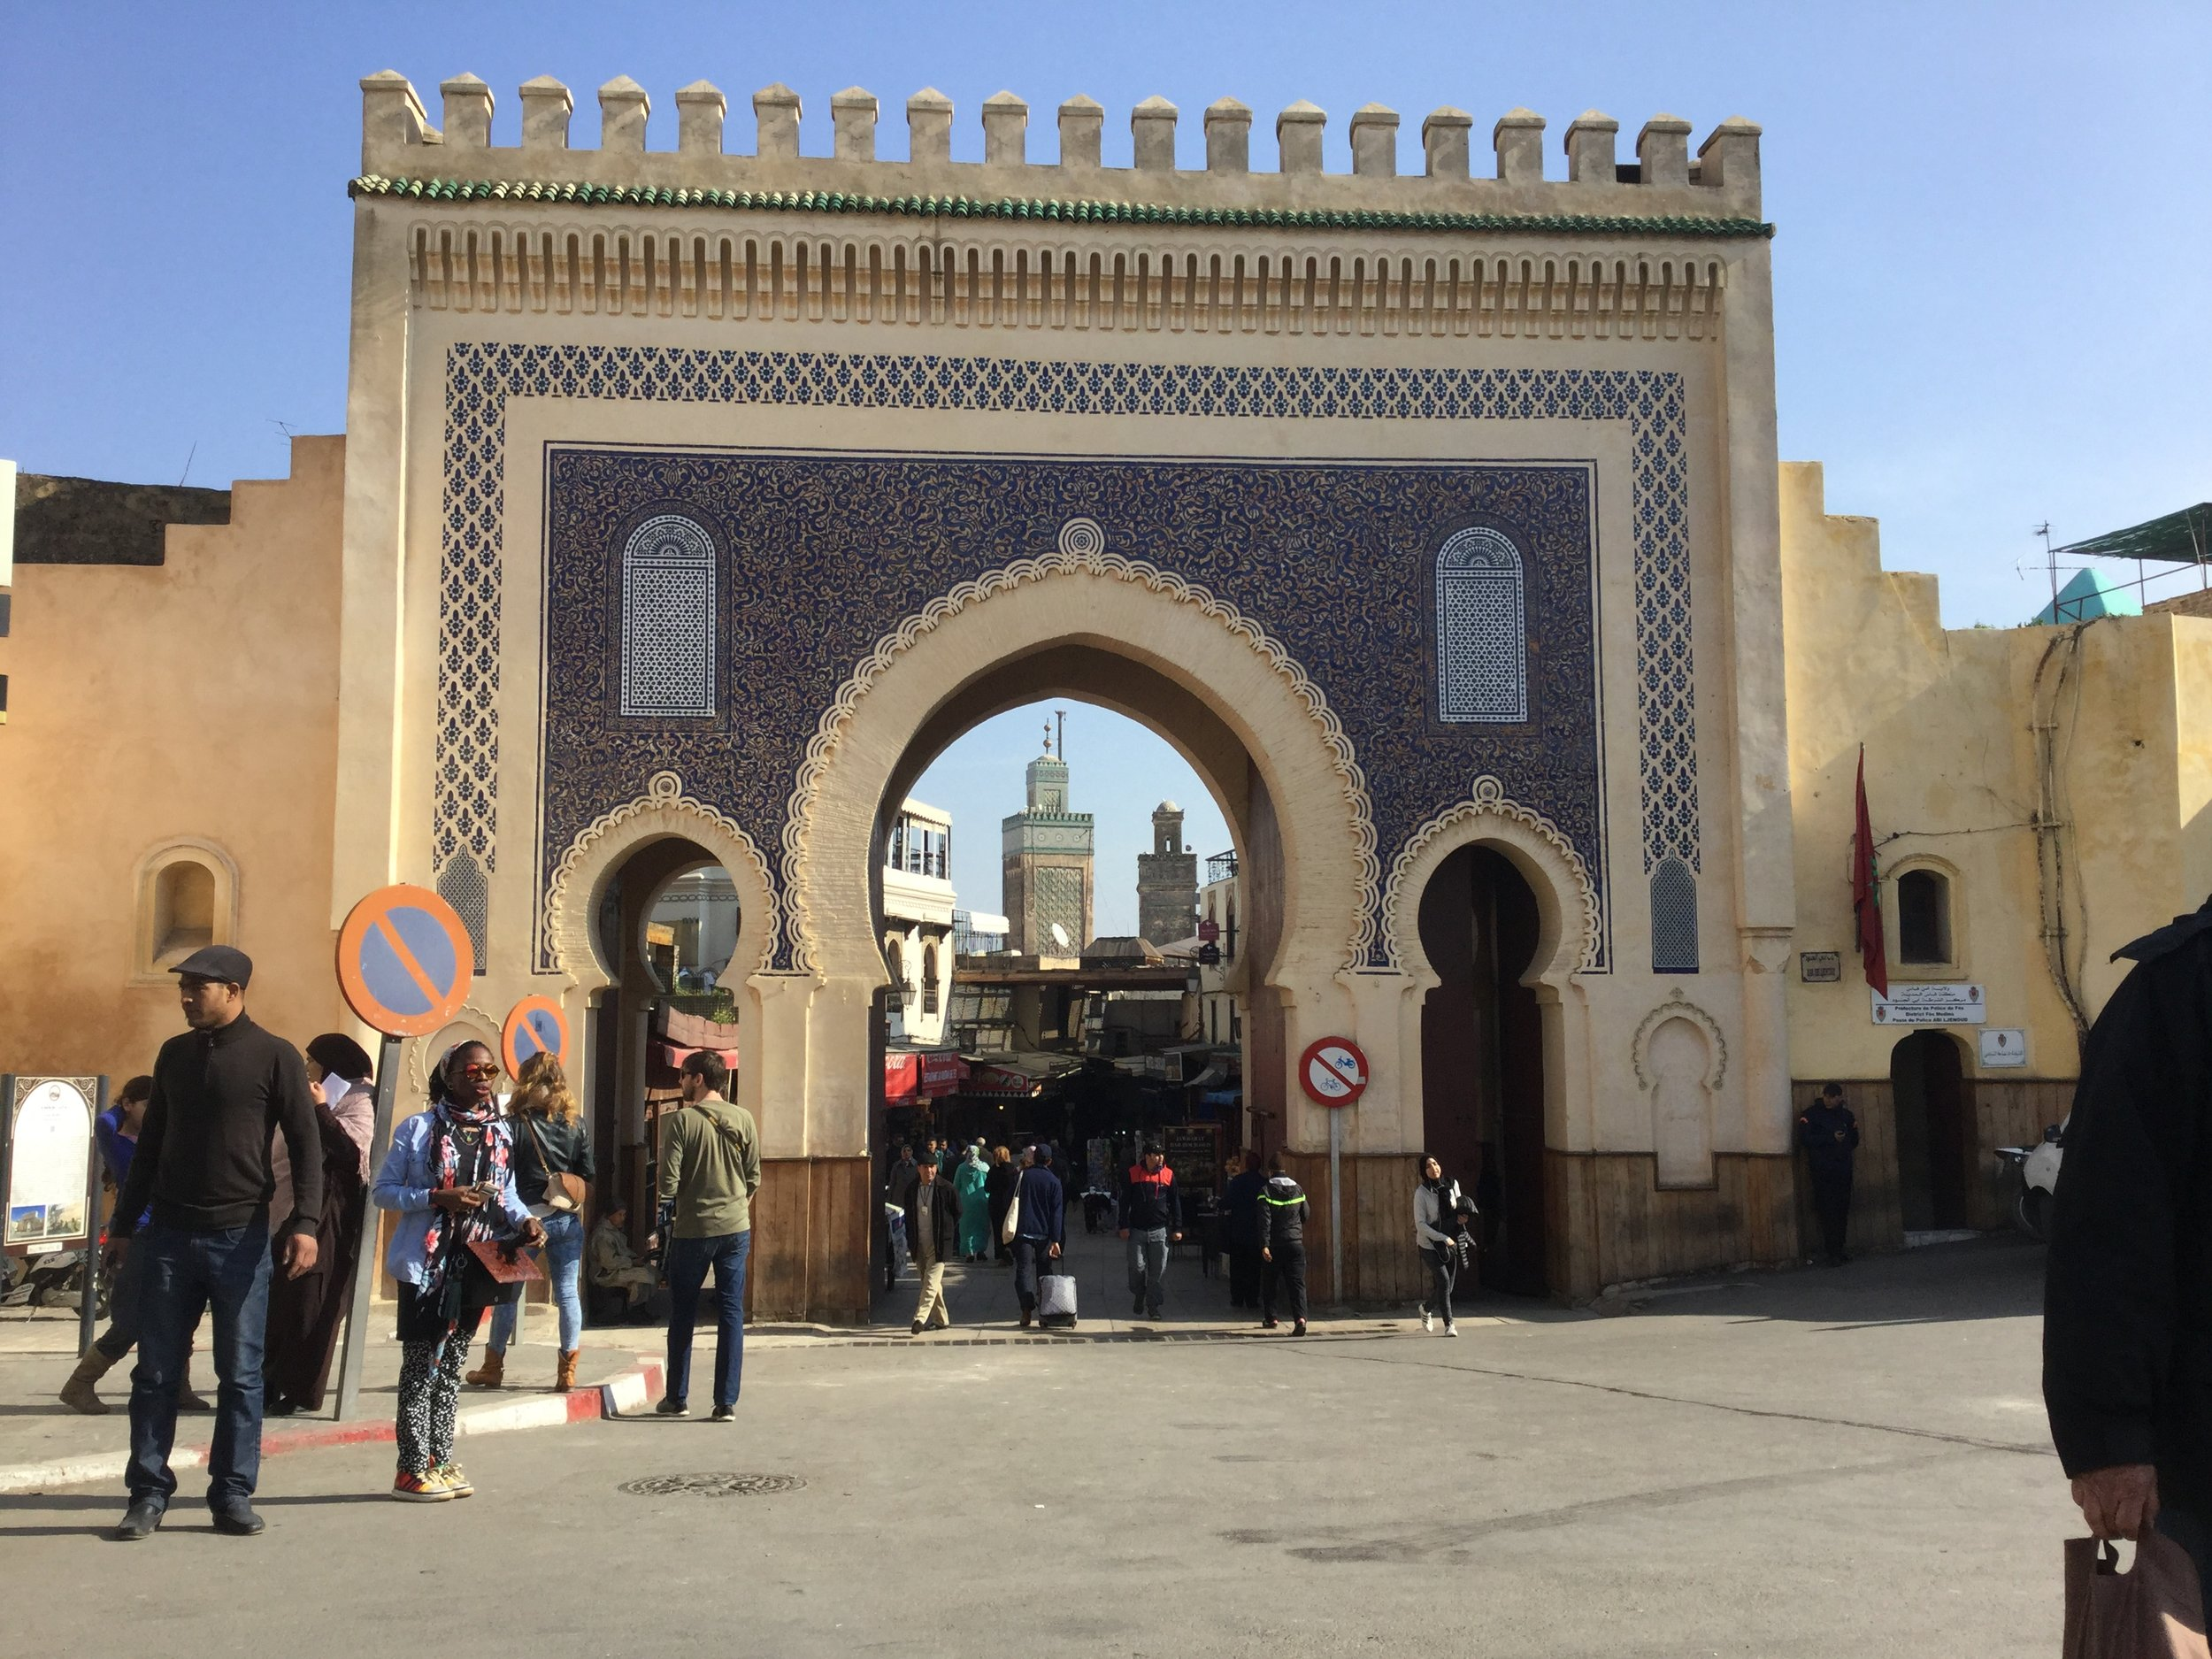 One of the gates to the old Medina. This famous view frames two minarets inside th gate.